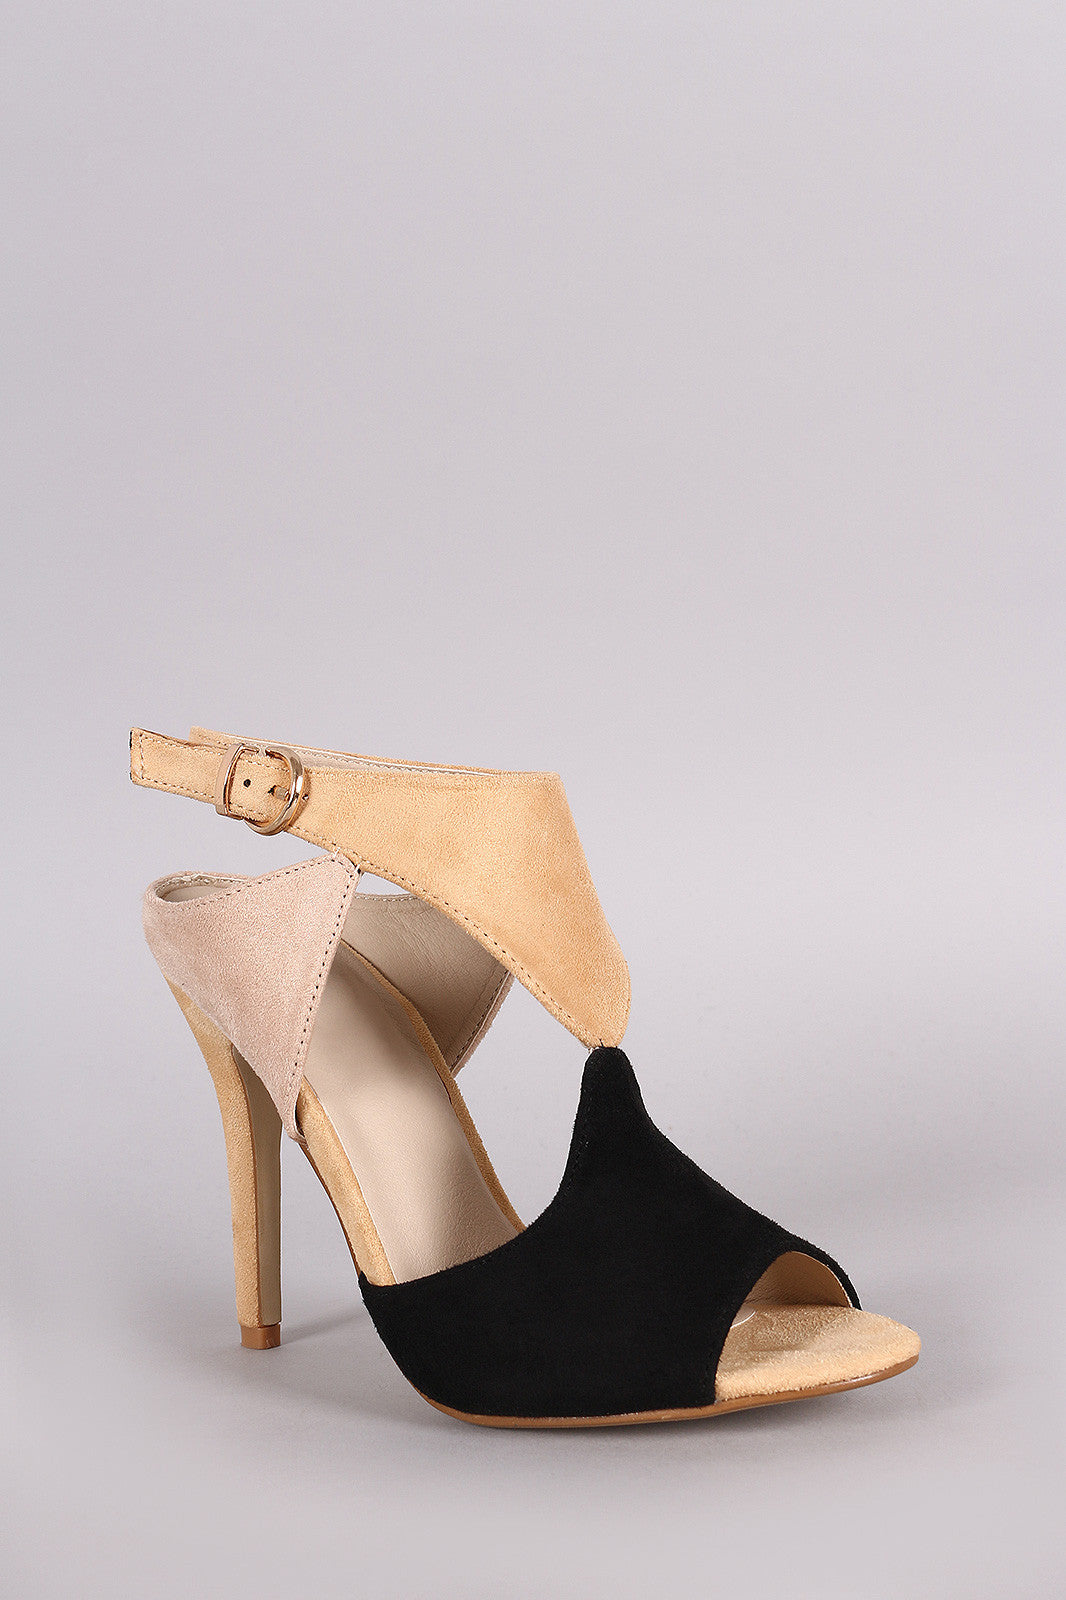 Cutout Block Color Peep Toe Stiletto Heel - Thick 'N' Curvy Shop - 3